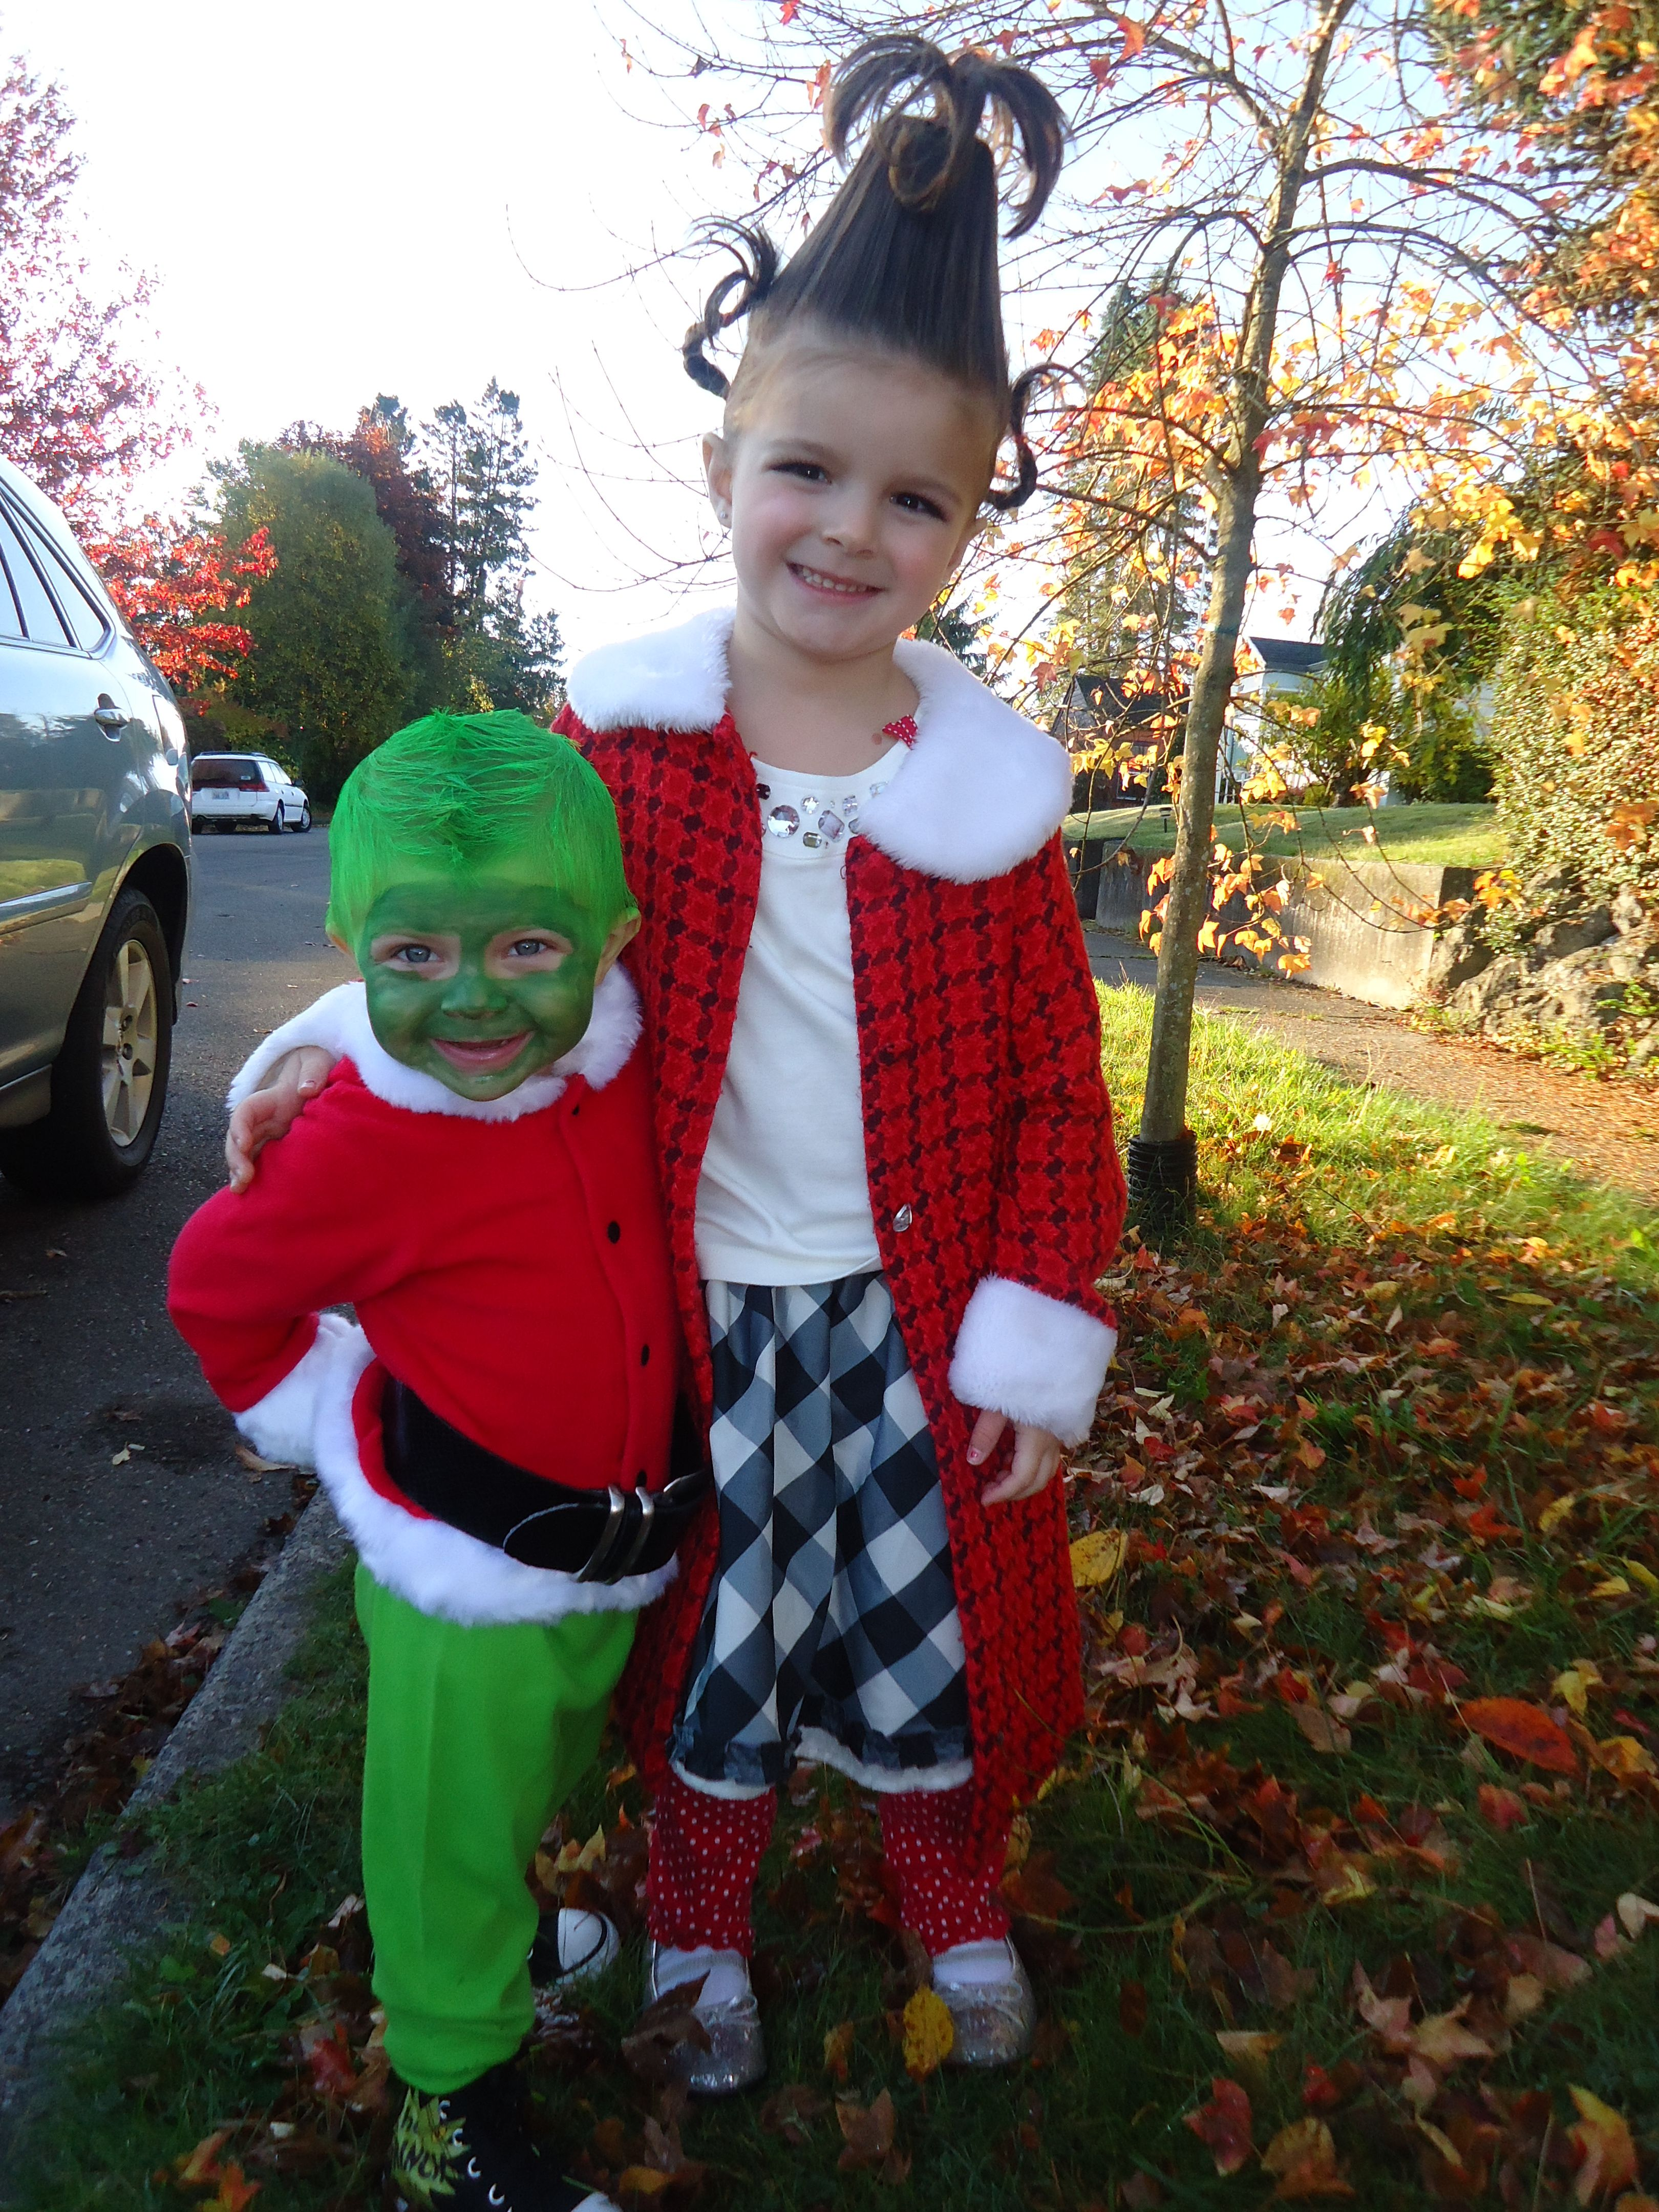 grinch and cindy lou who halloween costumes  sc 1 st  Pinterest & grinch and cindy lou who halloween costumes | holidays | Pinterest ...